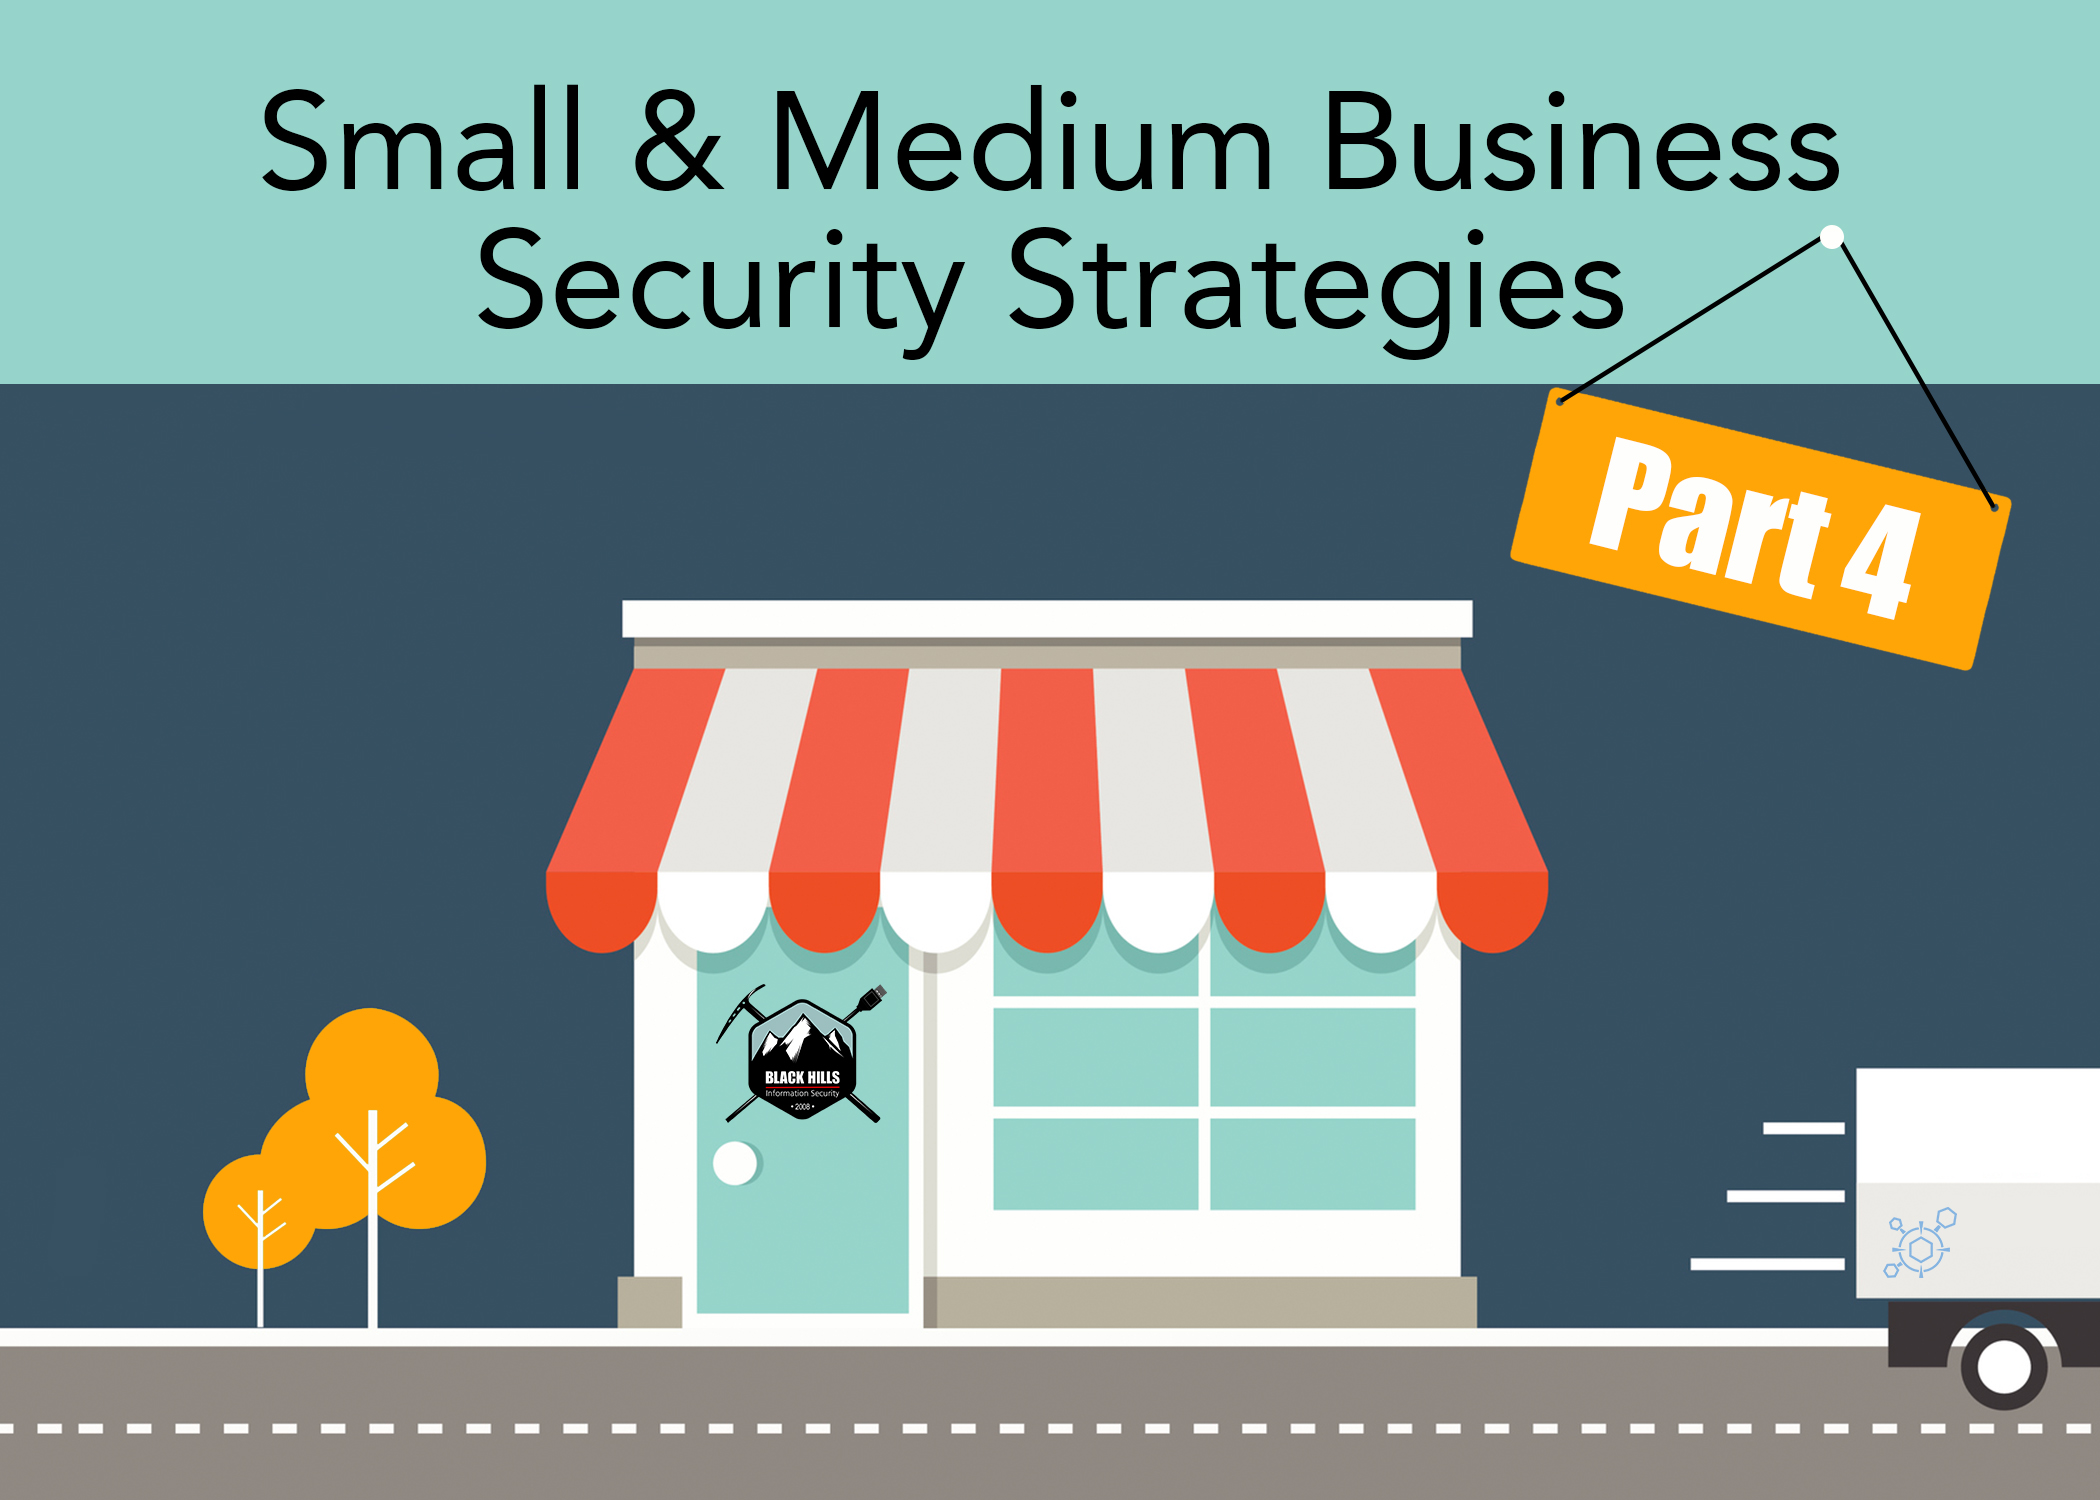 Small and Medium Business Security Strategies: Part 4